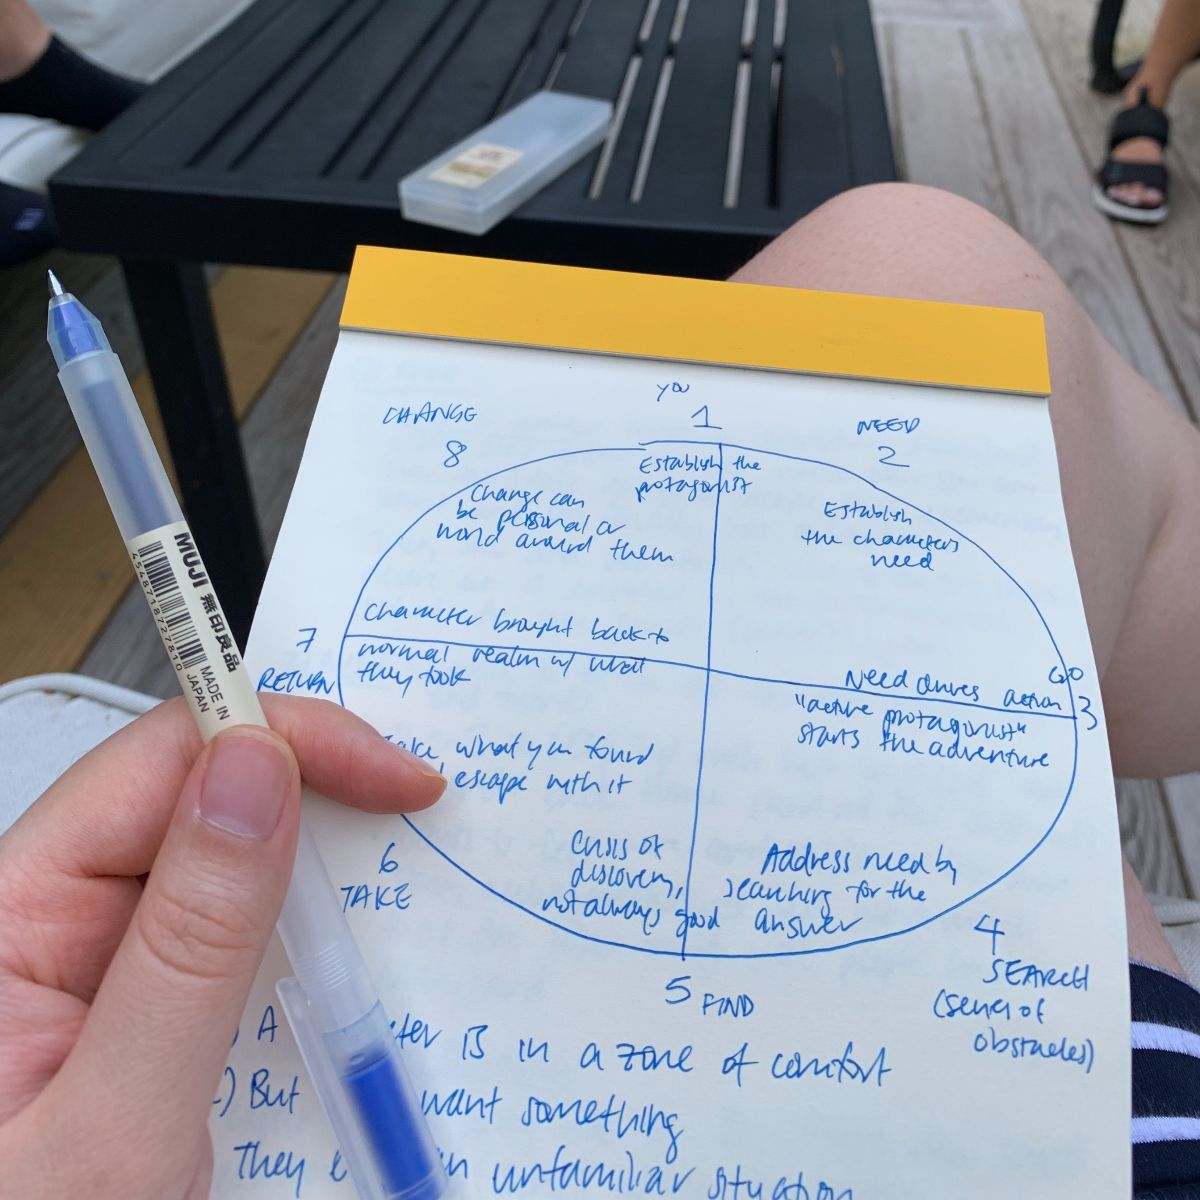 A picture of Nicole's notebook with an illustration of Dan Harmon's story circle